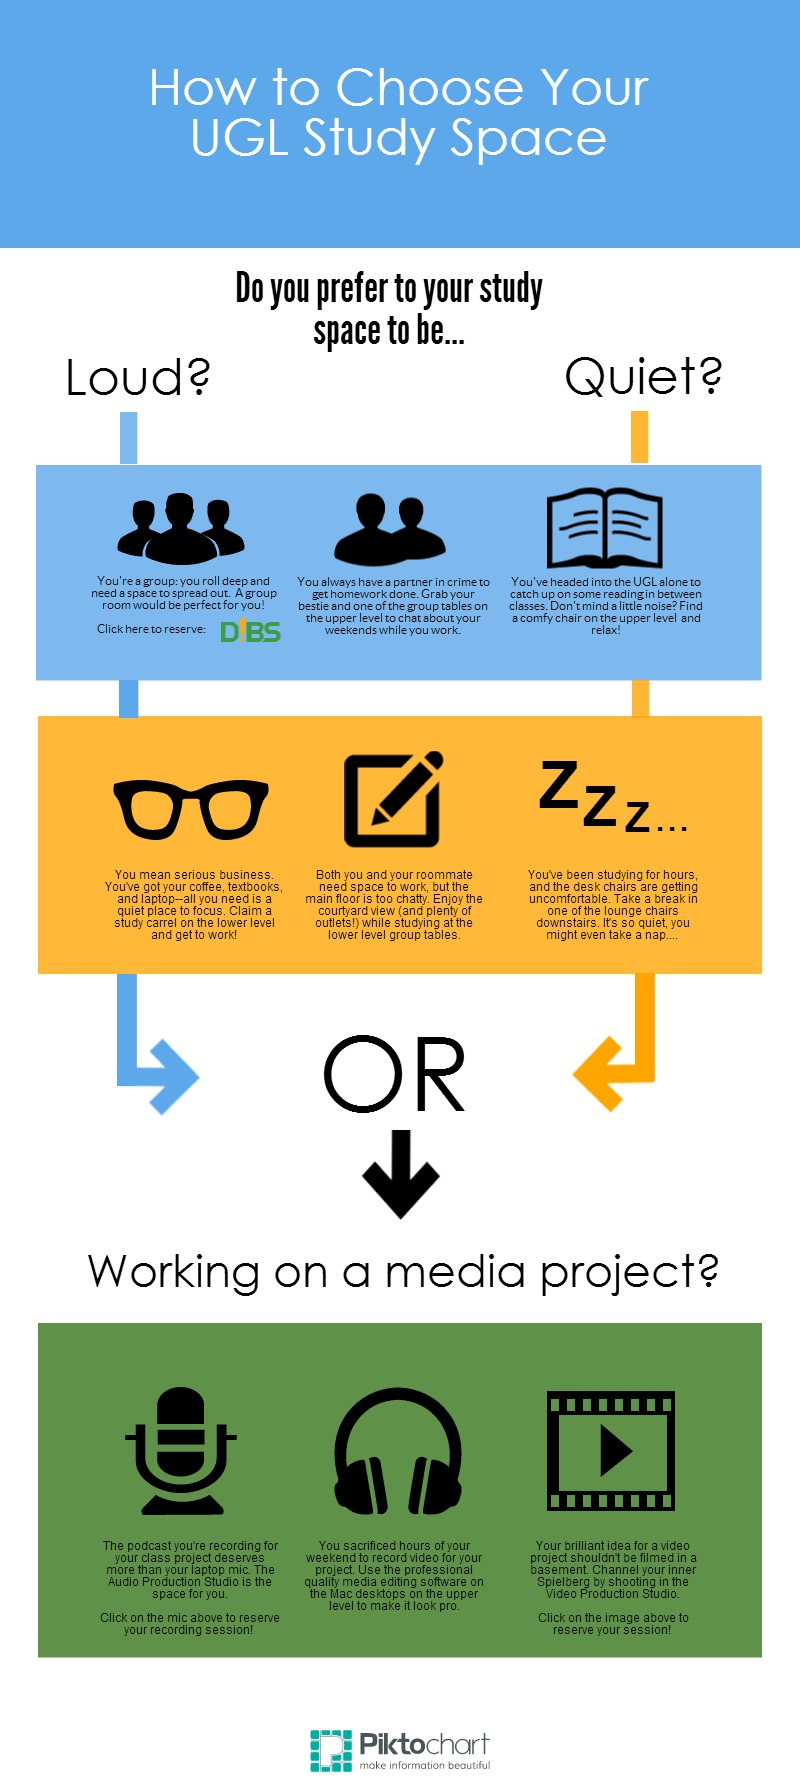 UGL Study Spaces